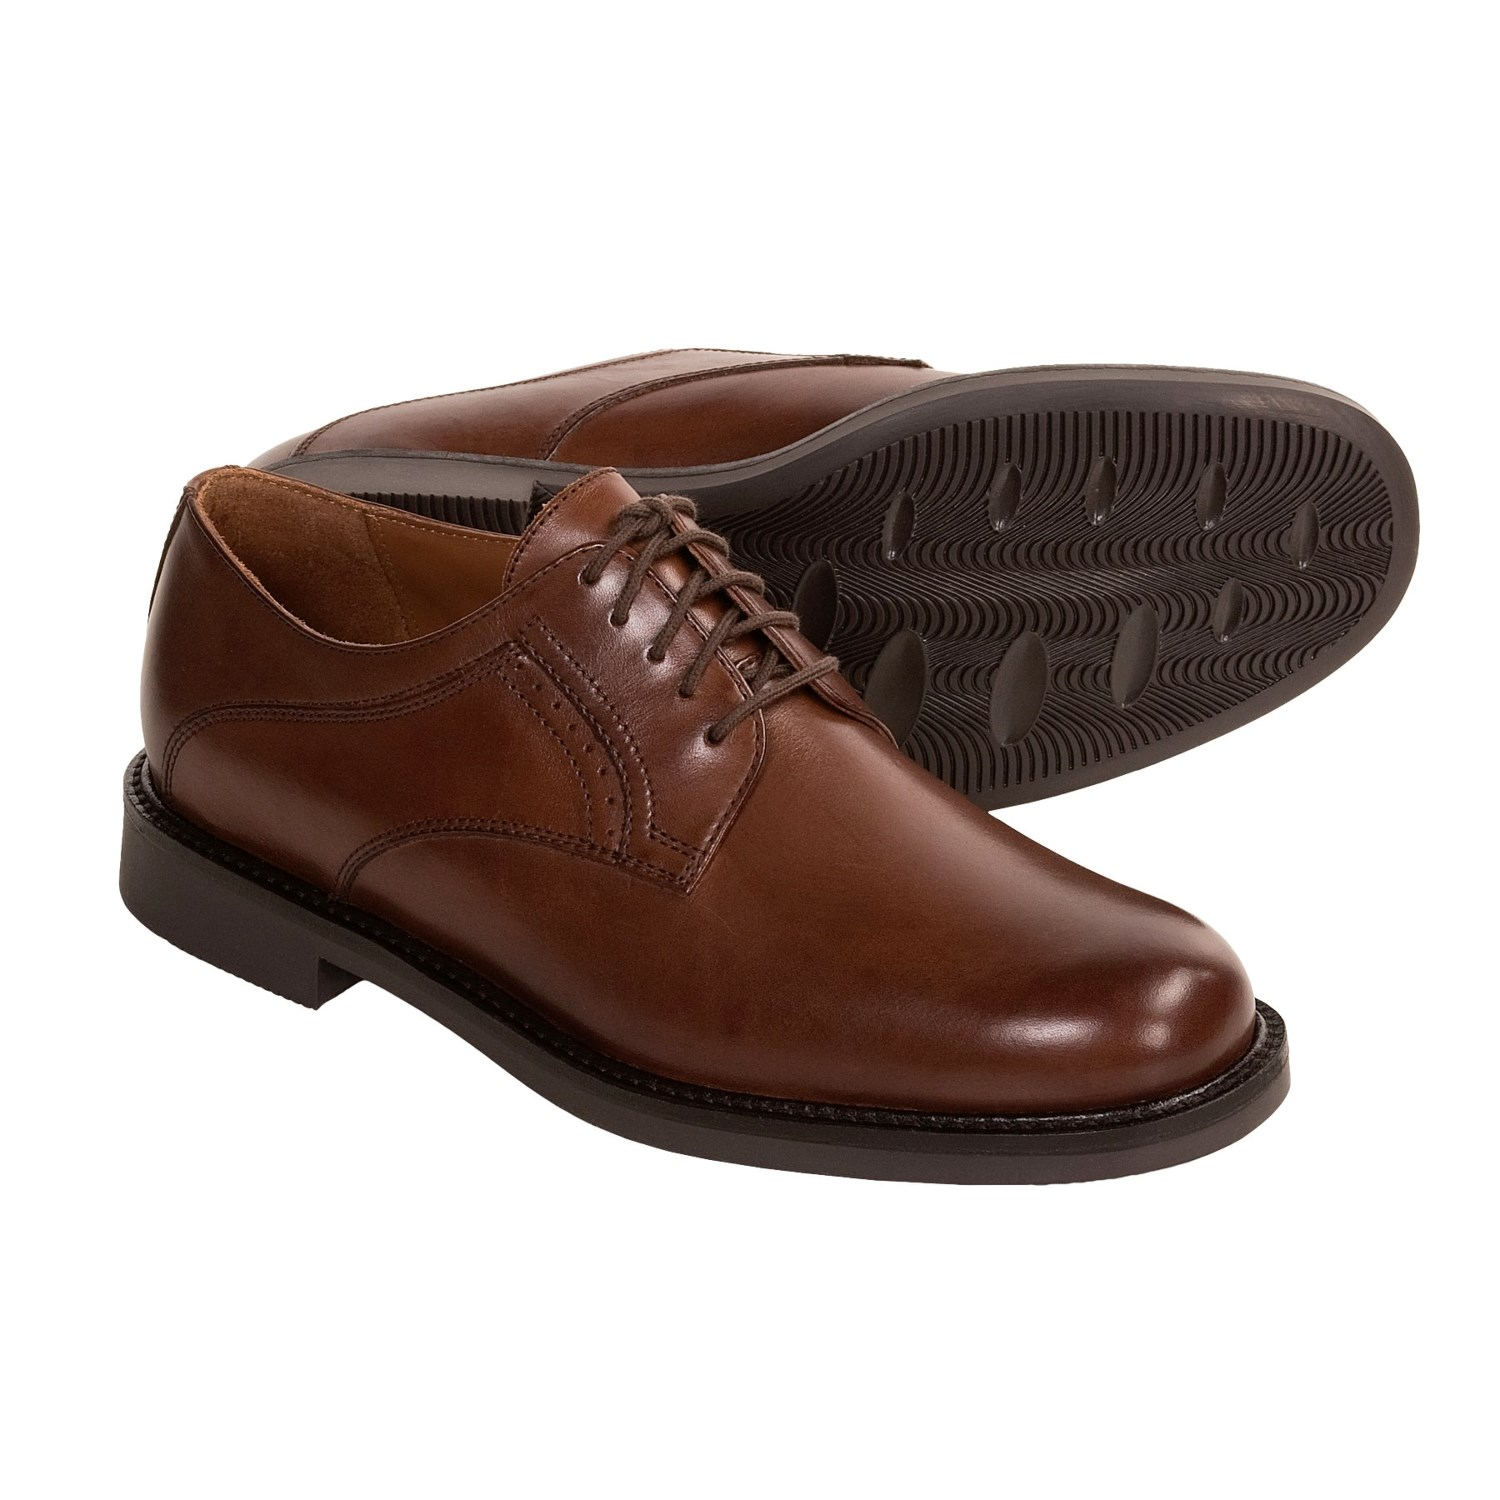 johnston and murphy oxford shoes mens dress sandals